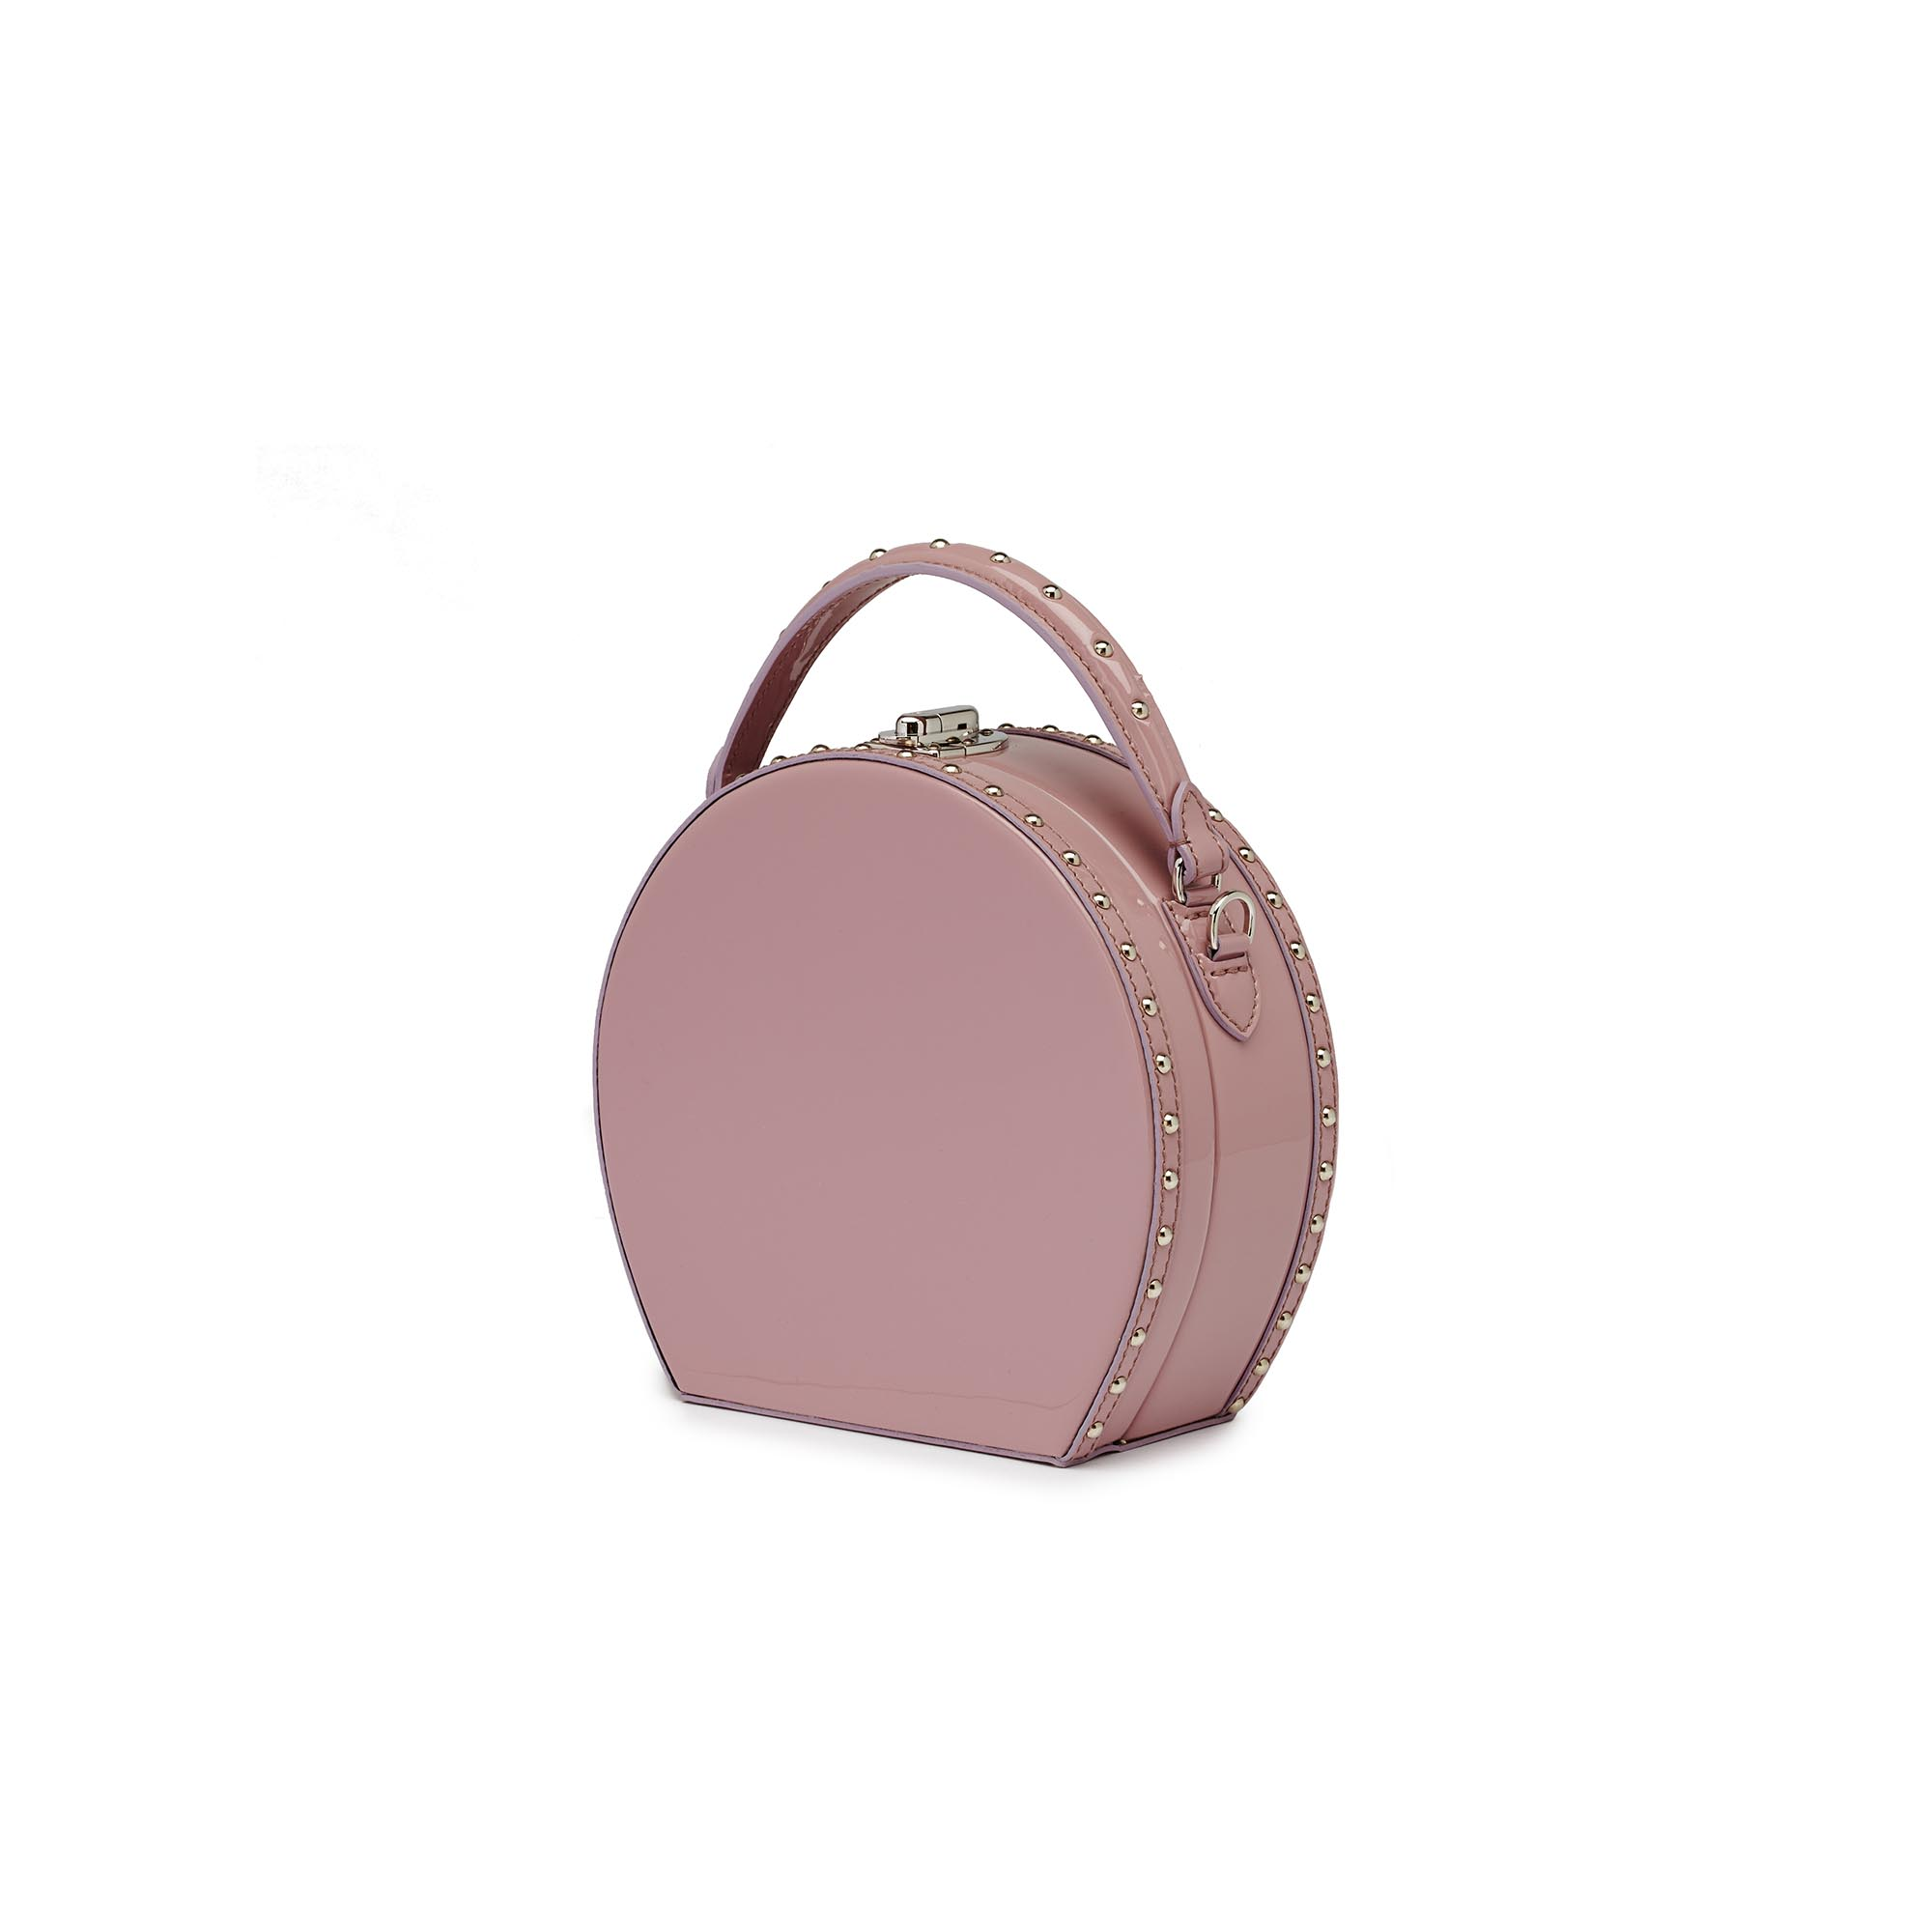 Regular-Bertoncina-mauve-patent-leather-bag-Bertoni-1949_02